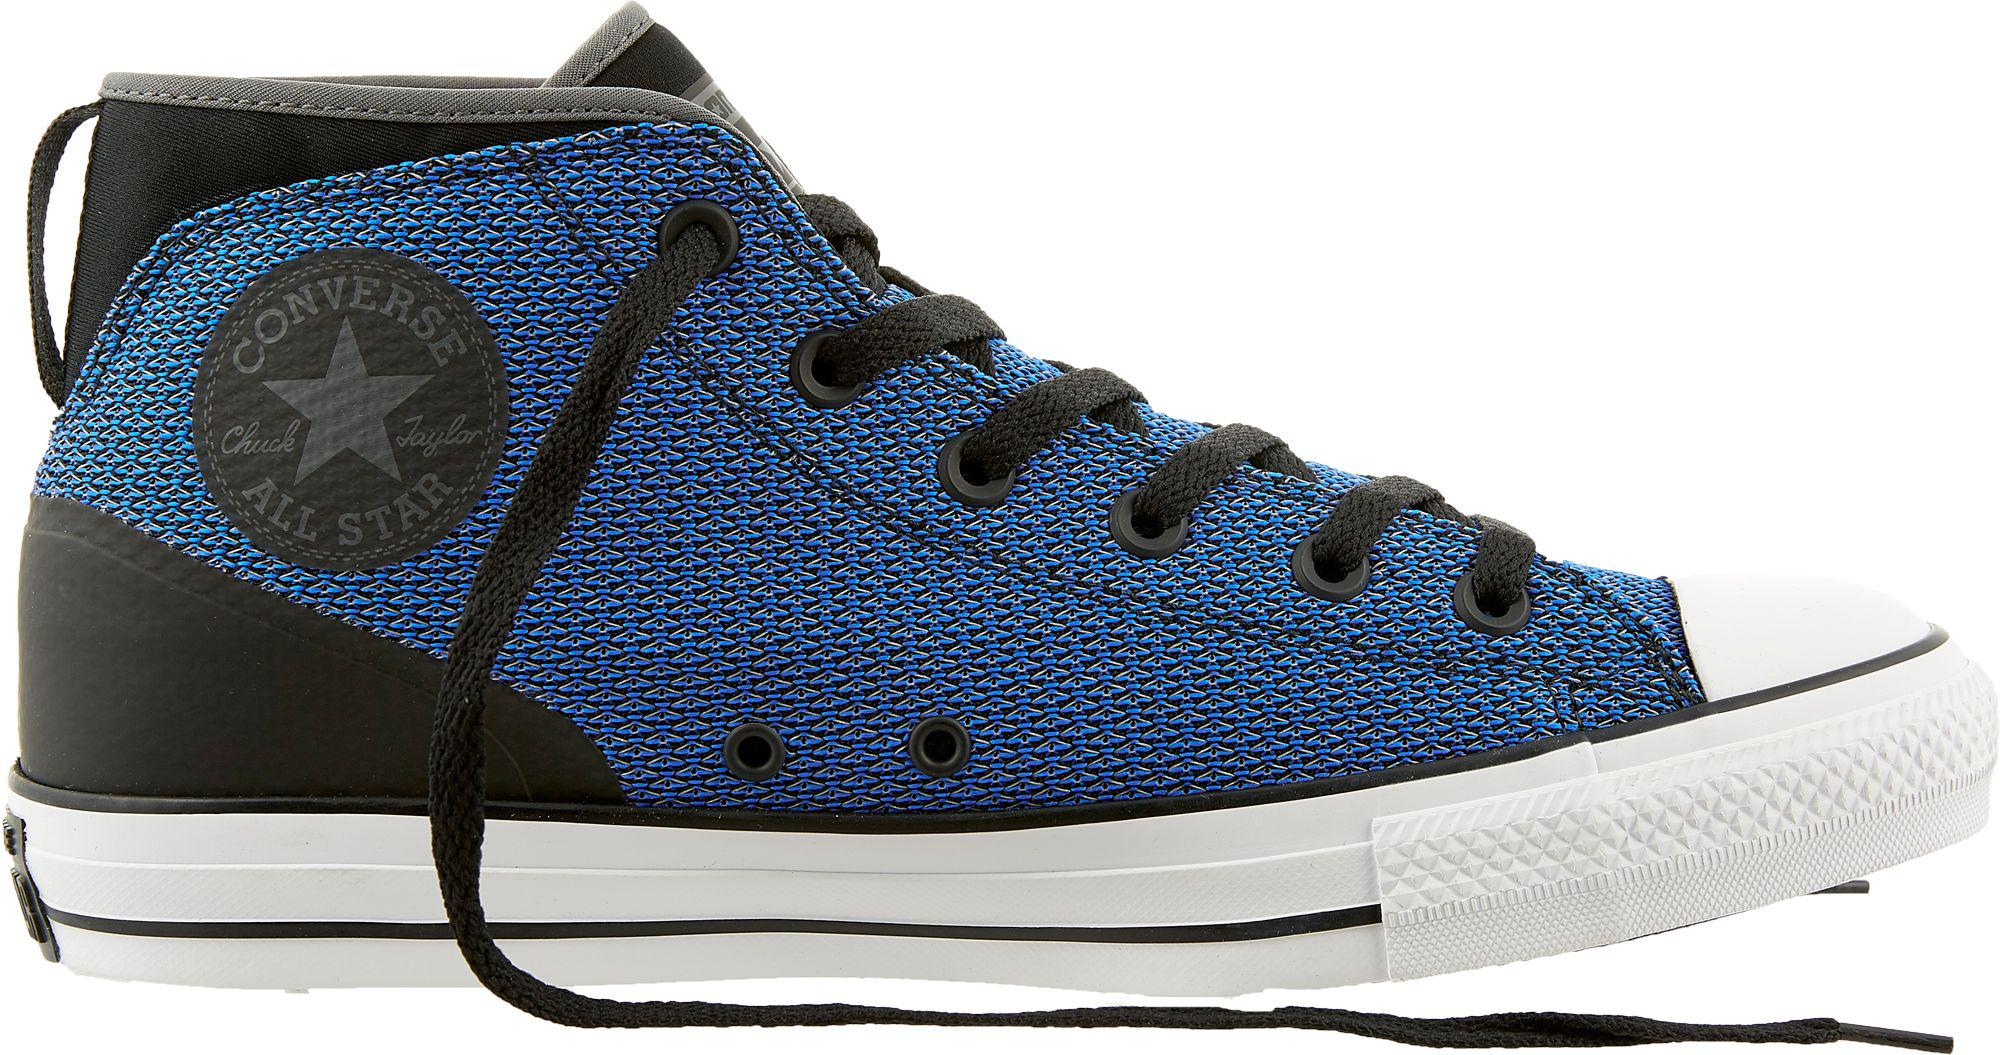 008e81a46994 Lyst - Converse Chuck Taylor All Star Syde Street Mid-top Casual ...